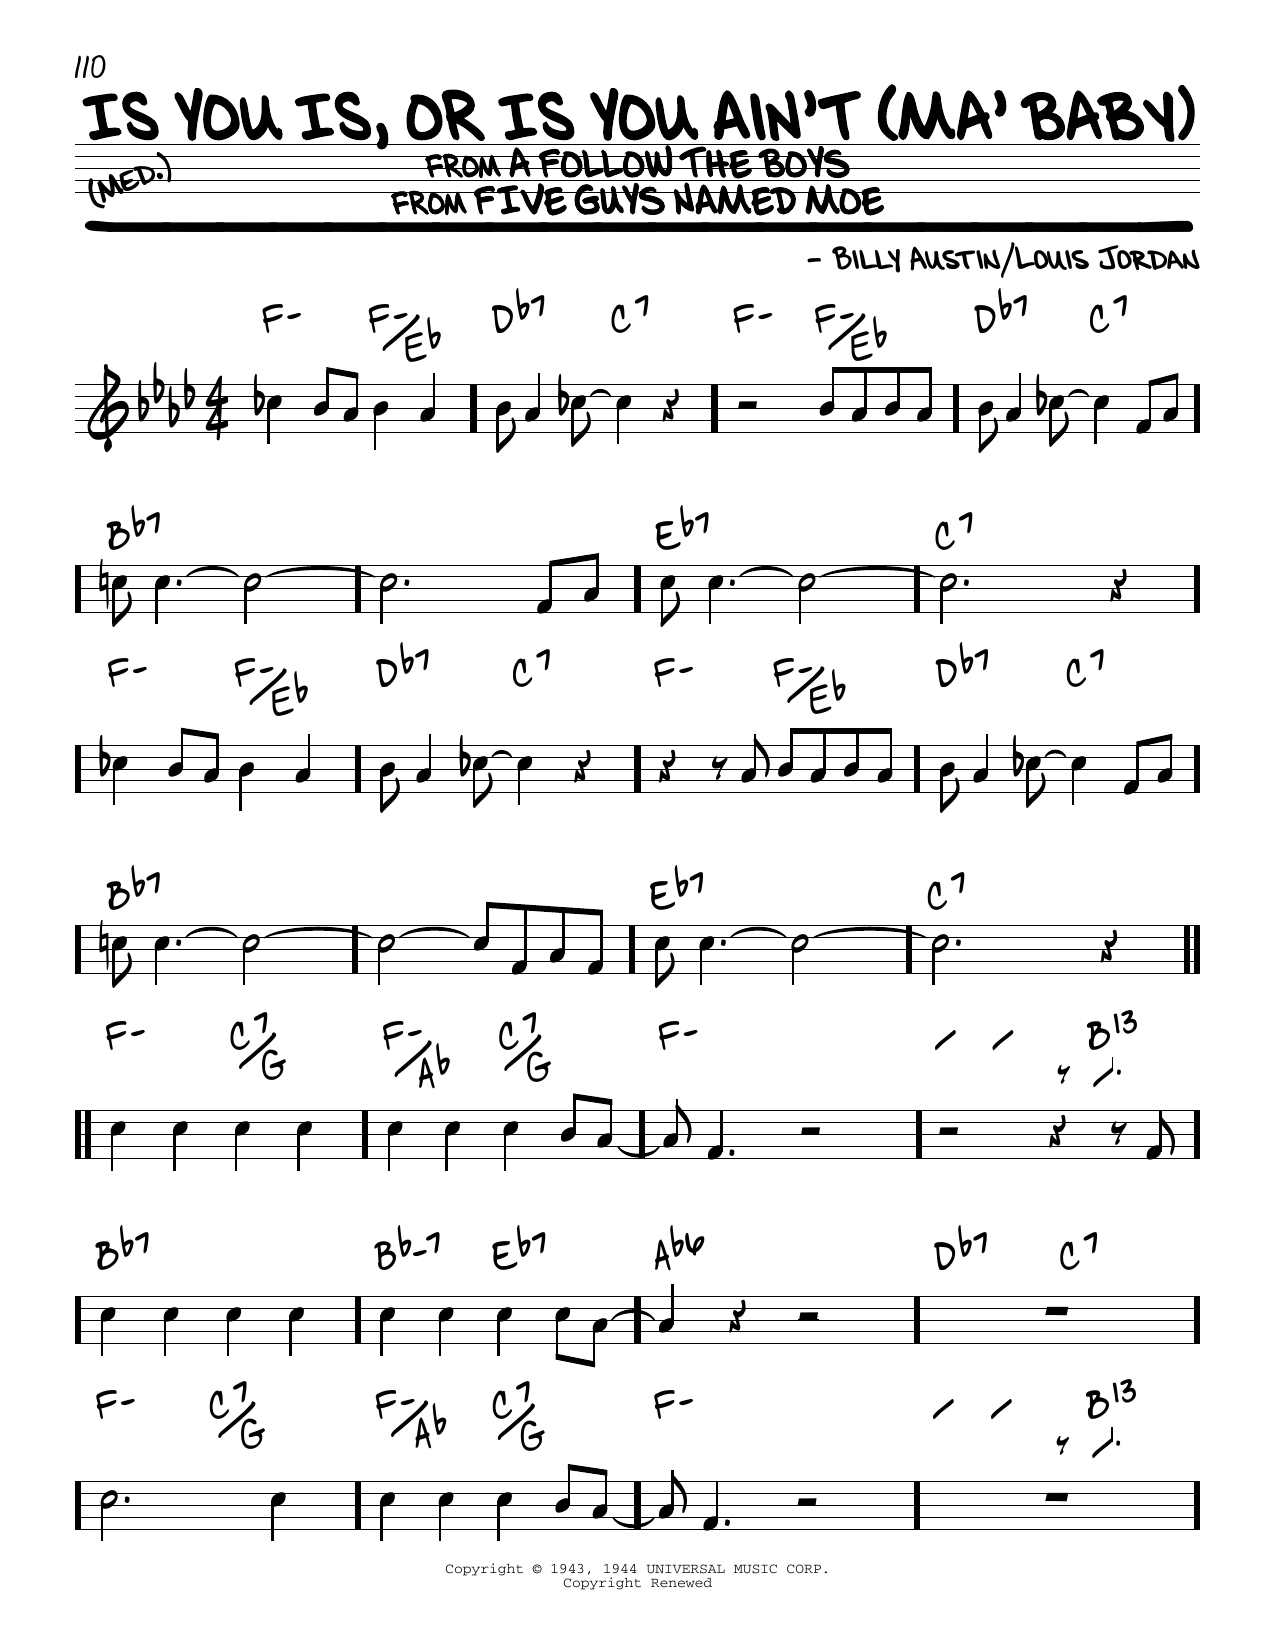 Is You Is, Or Is You Ain't (Ma' Baby) Sheet Music